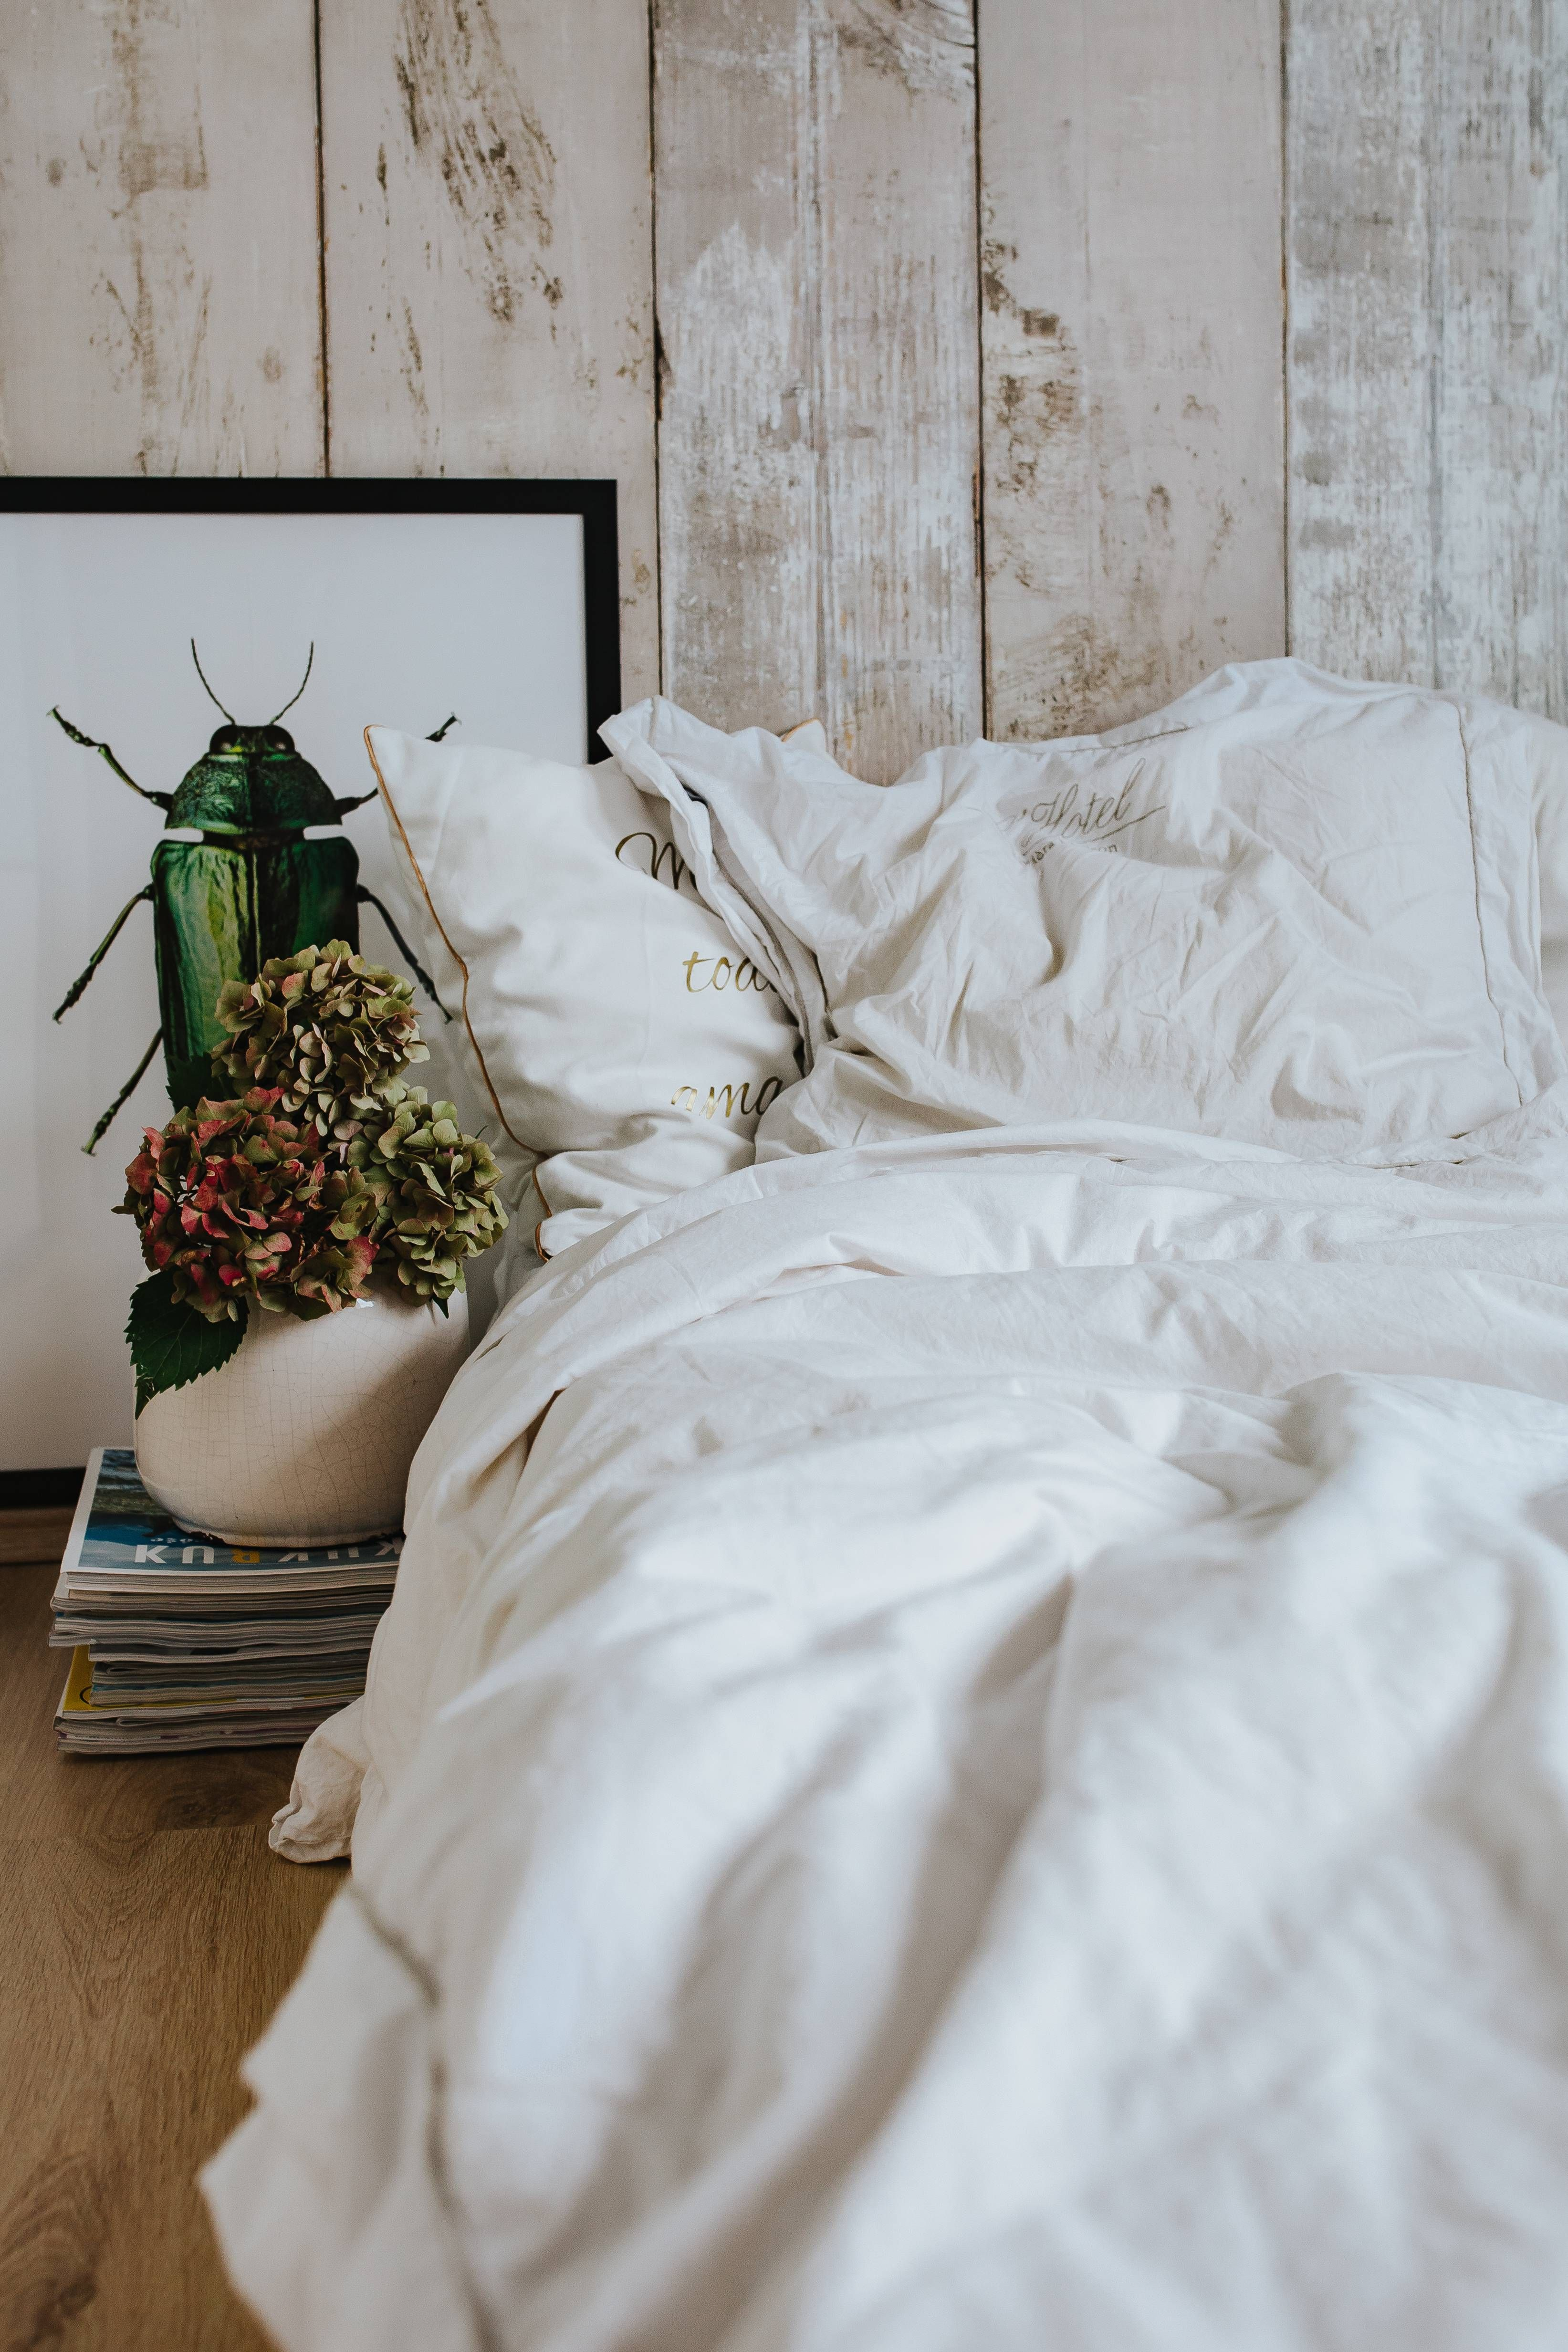 White wood planks for your bedroom rustic design interior